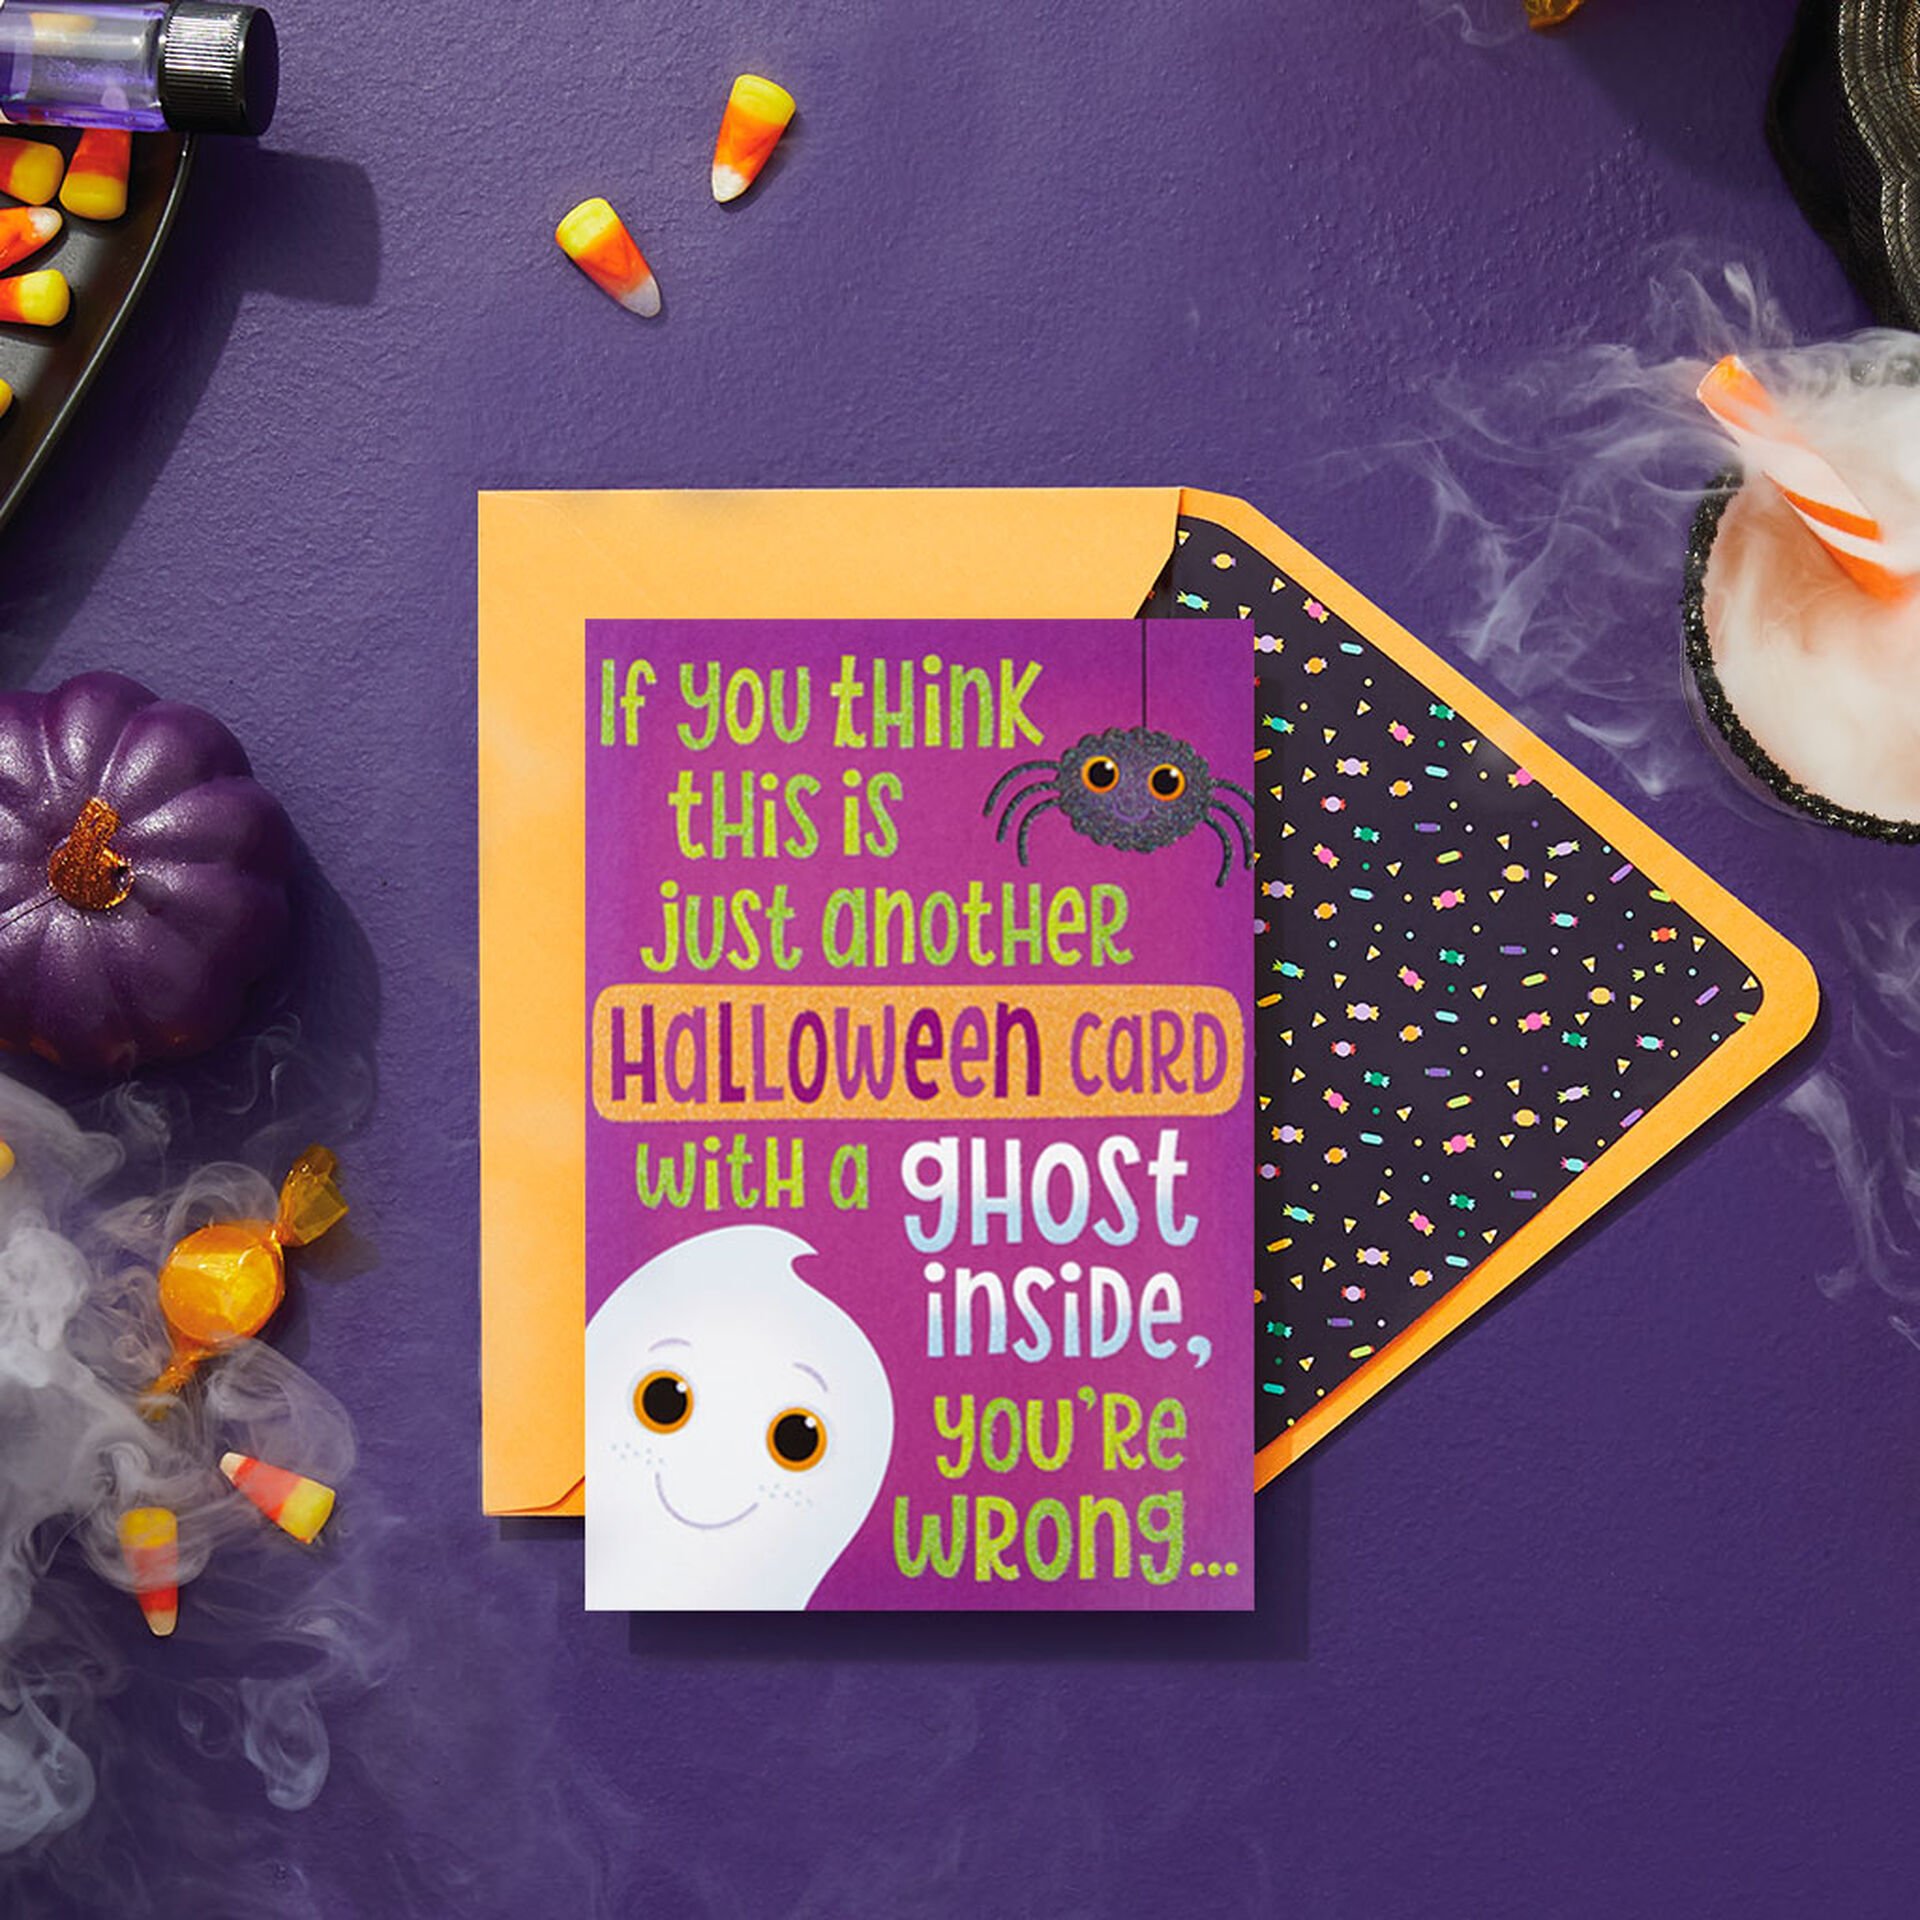 Current 2020 There Halloween Card Hallmark Greeting Cards, Gifts, Ornaments, Home Decor & Gift Wrap